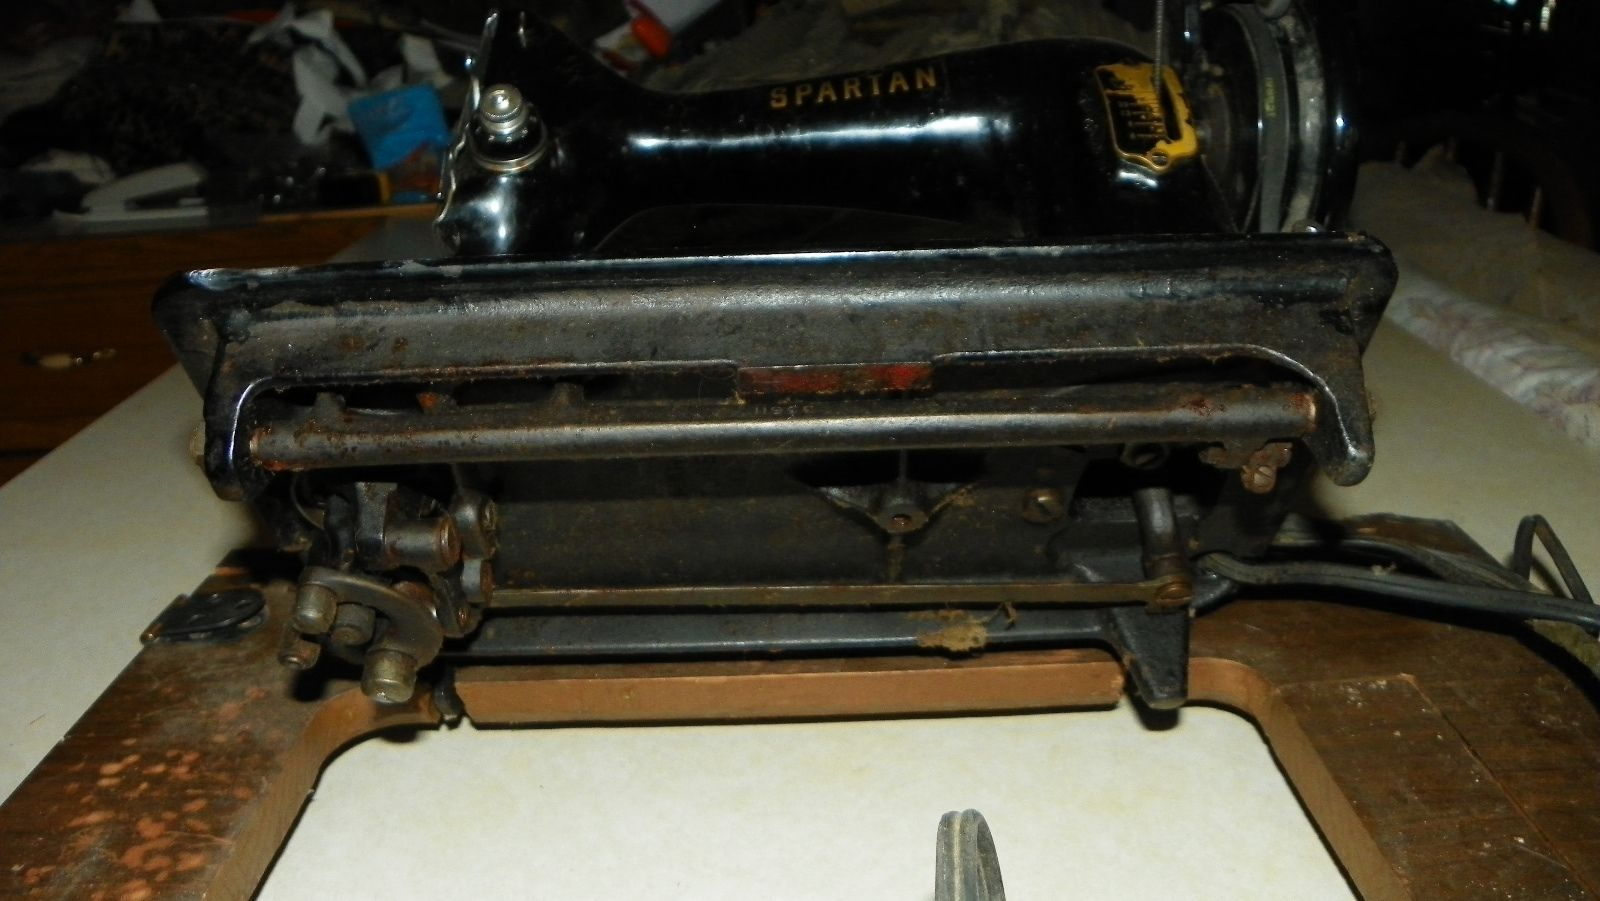 spartan sewing machine